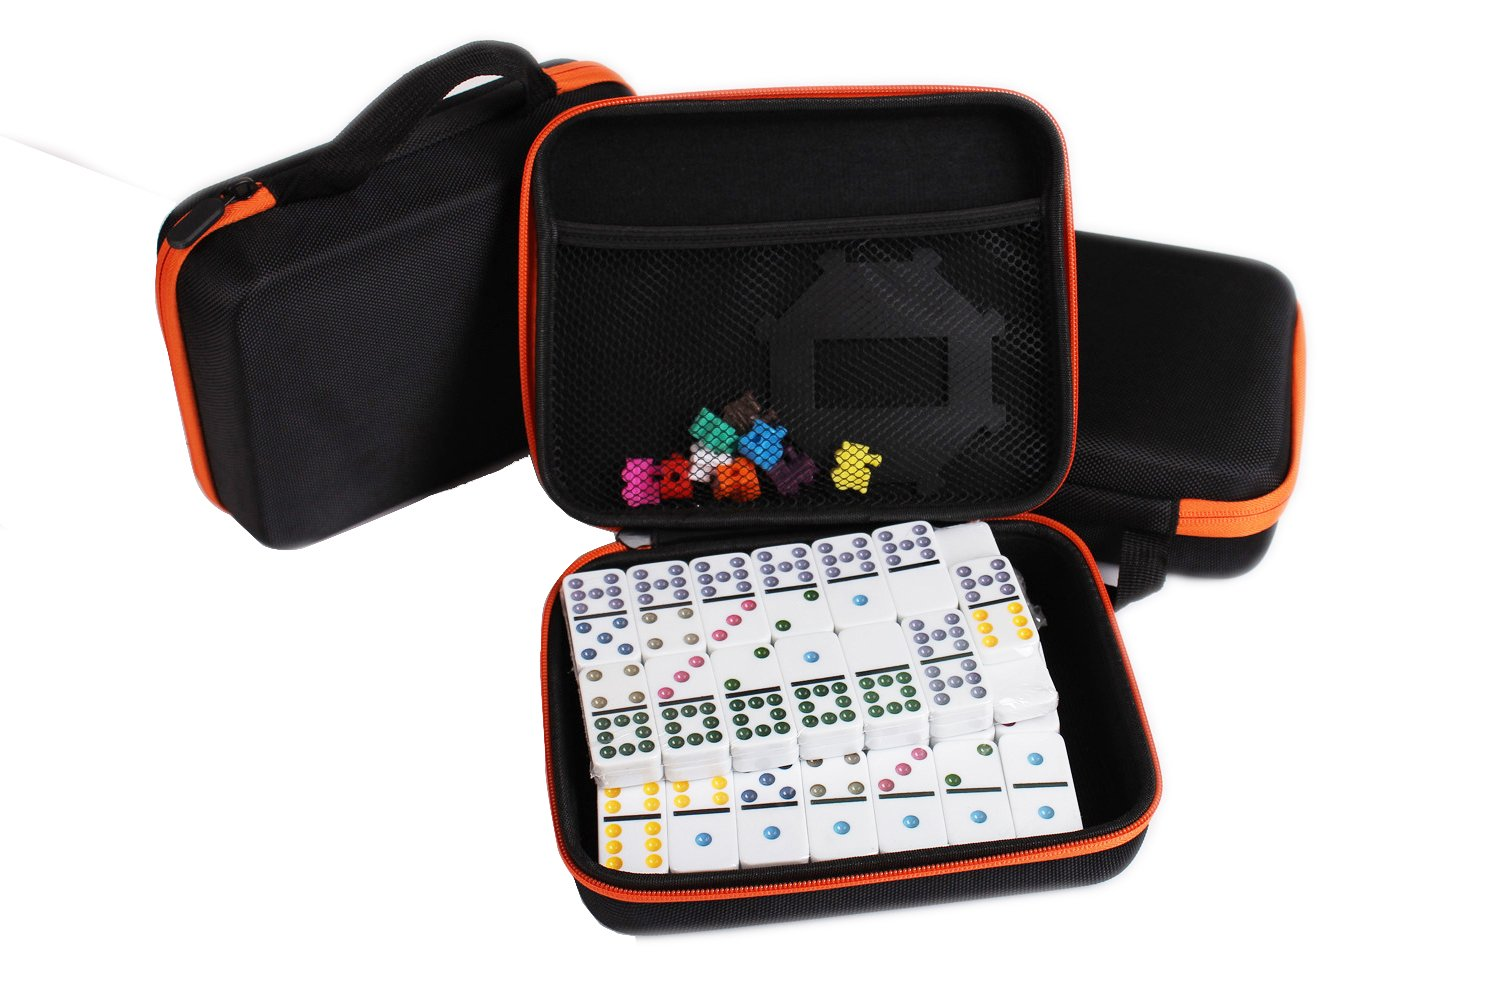 Kalolary Mexican Train Dominoes Game,91 Piece Double 12 Color Dominoes Set for Children's day